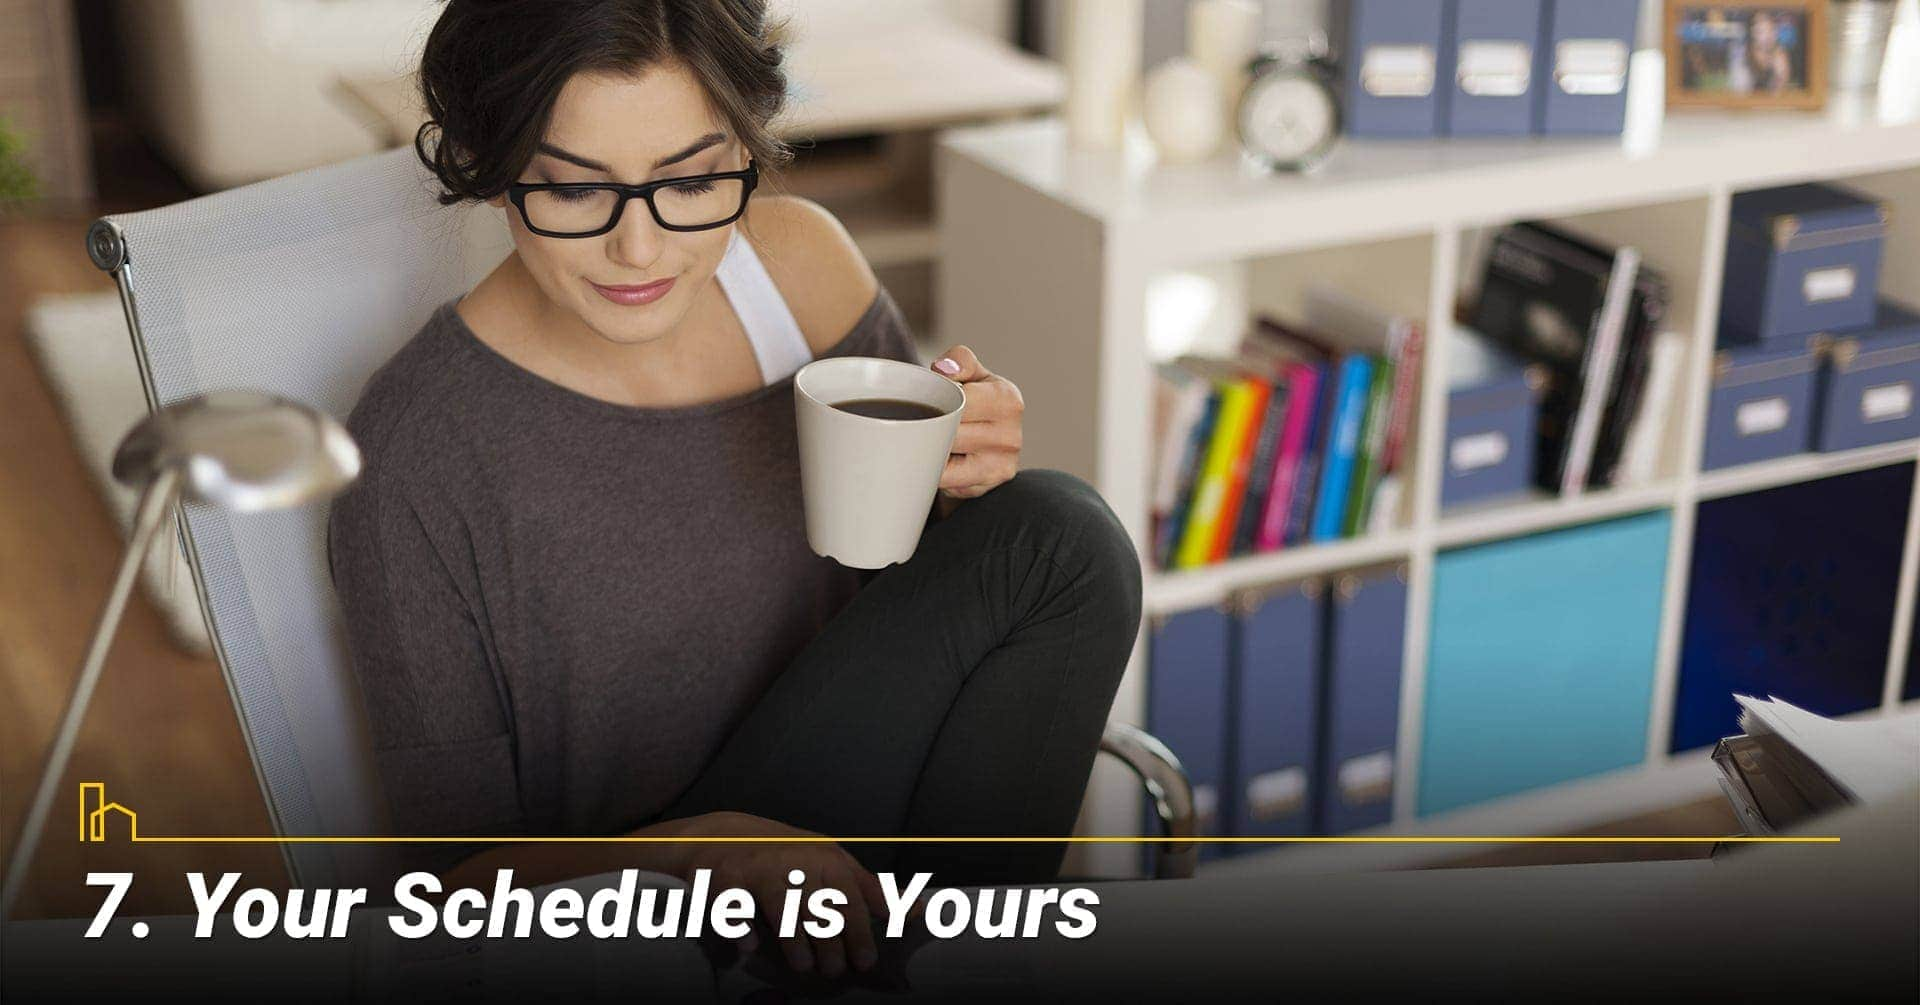 Your Schedule is Yours, gain control of your time